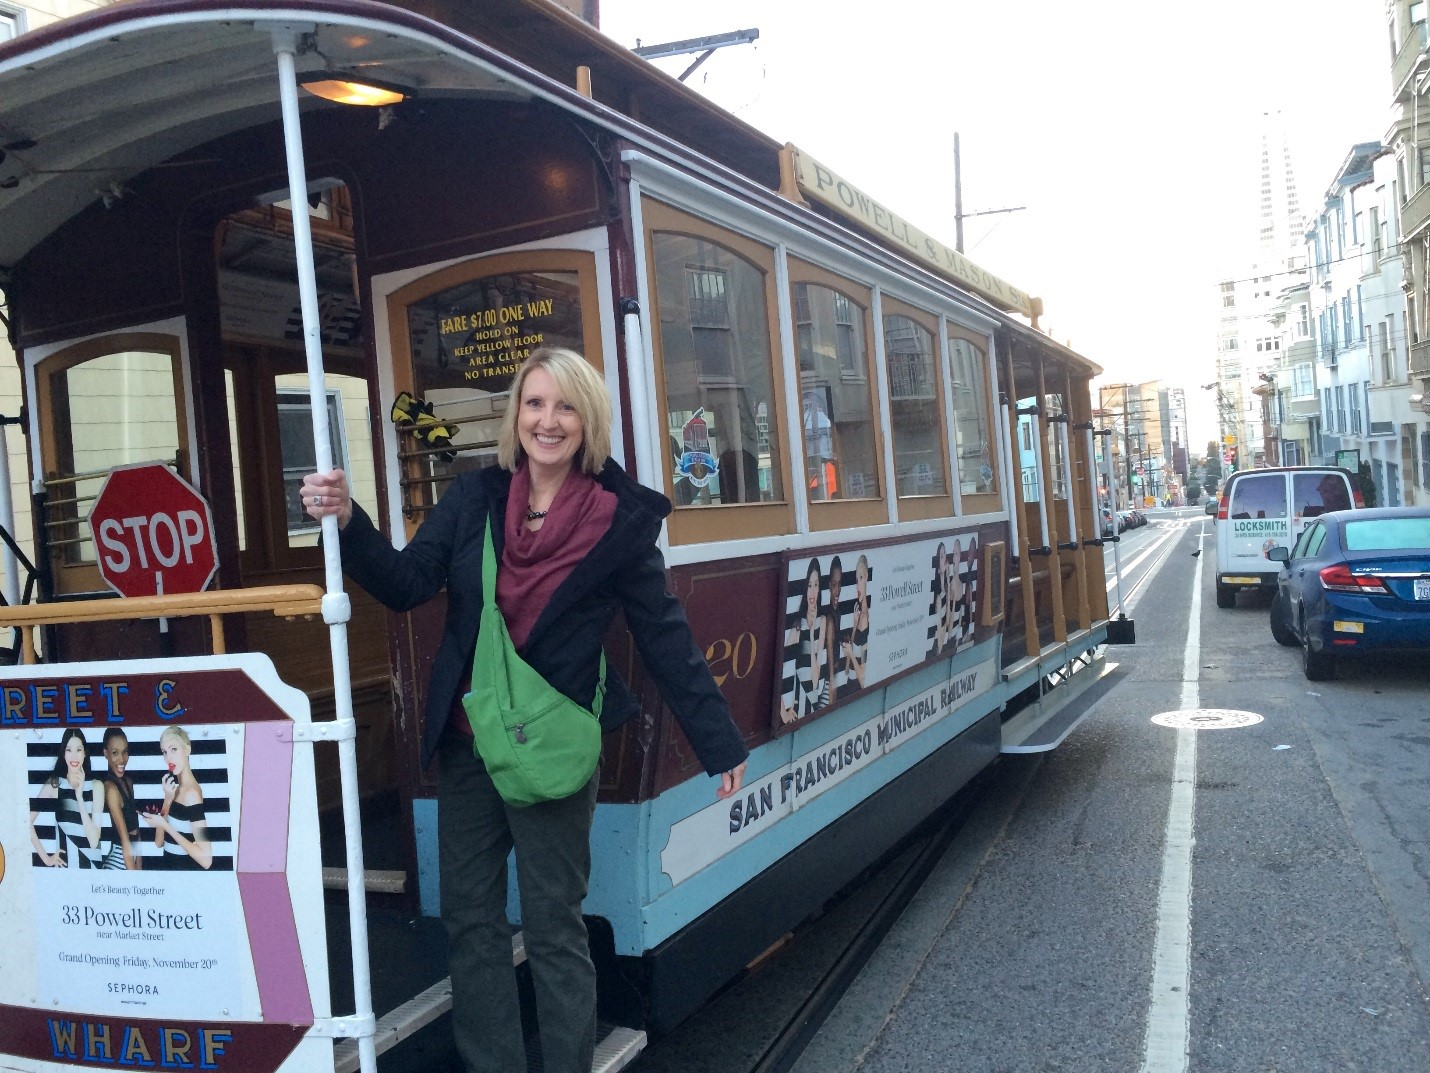 Dr. Weigle catching the trolley in downtown San Francisco